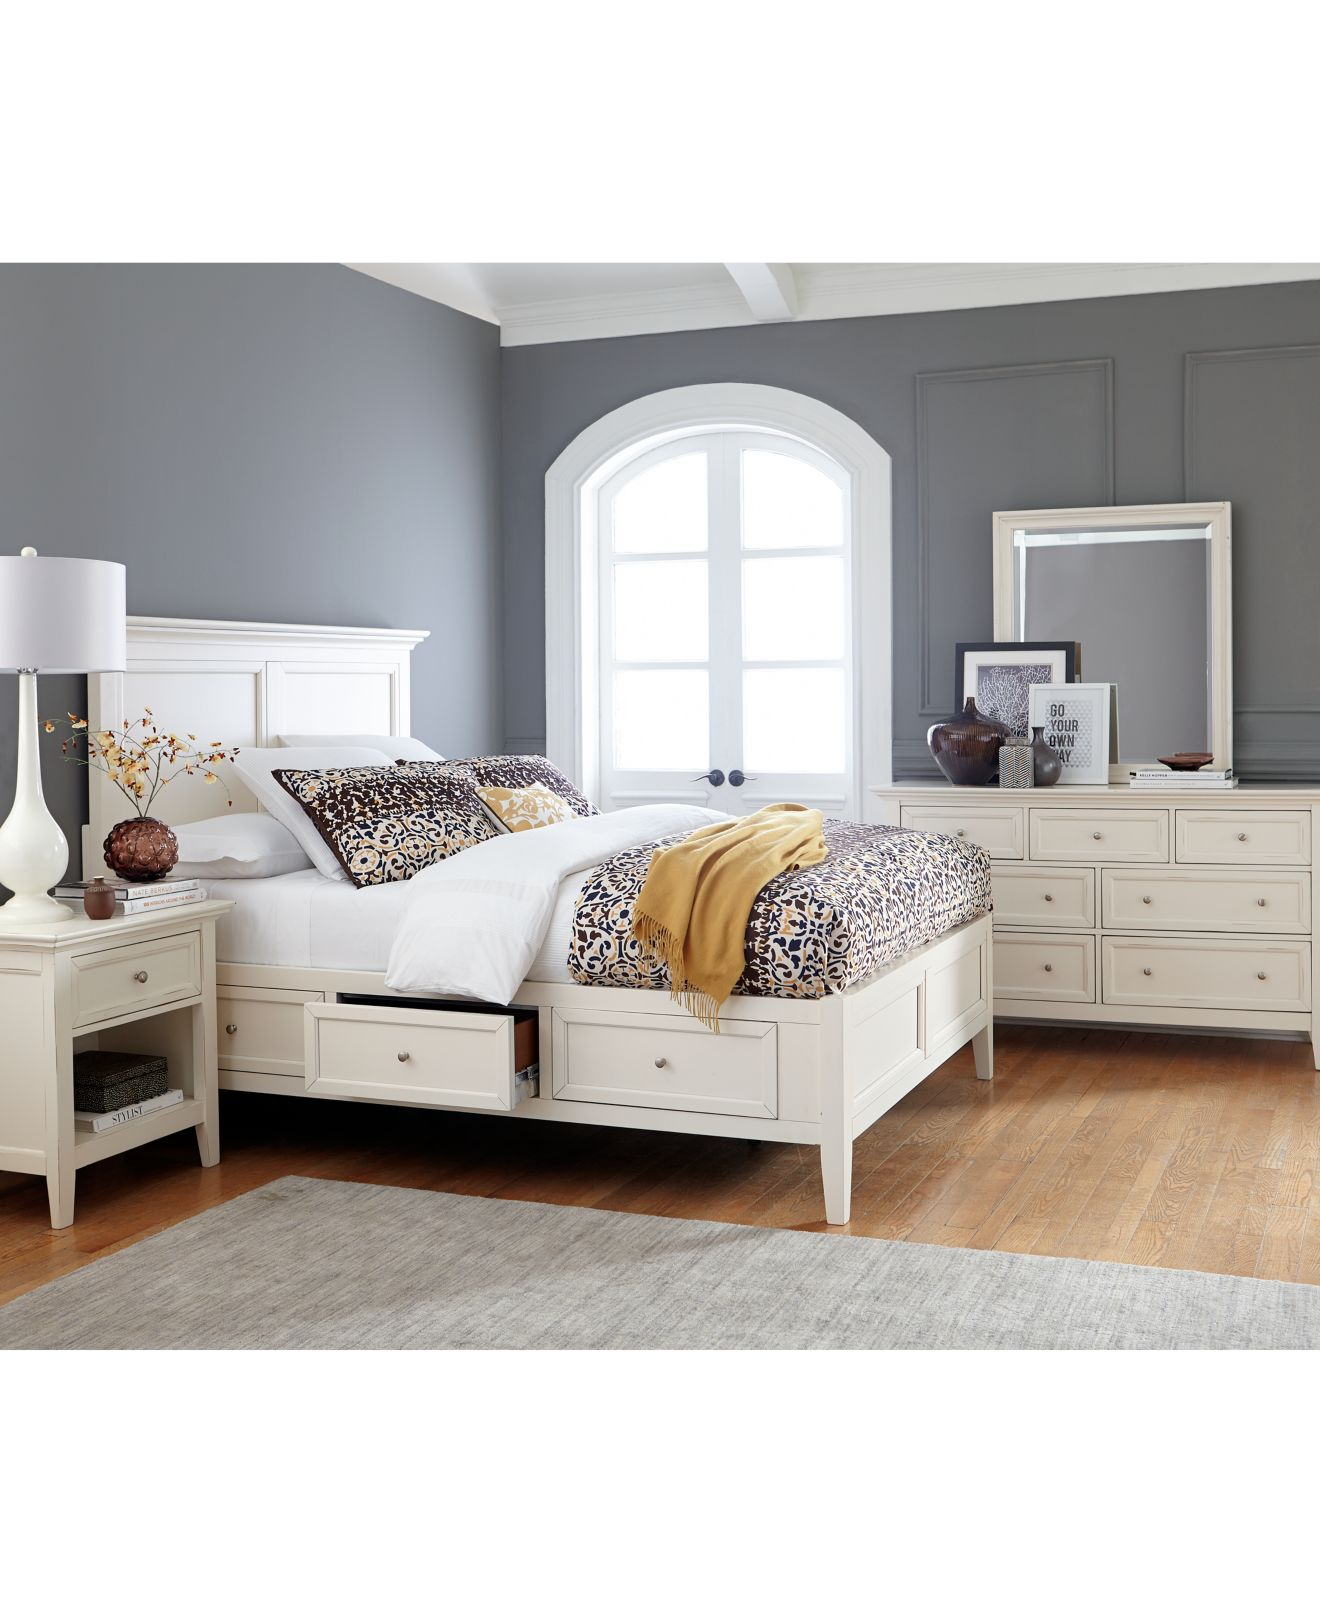 sanibel furniture - shop for and buy sanibel furniture online - macy's